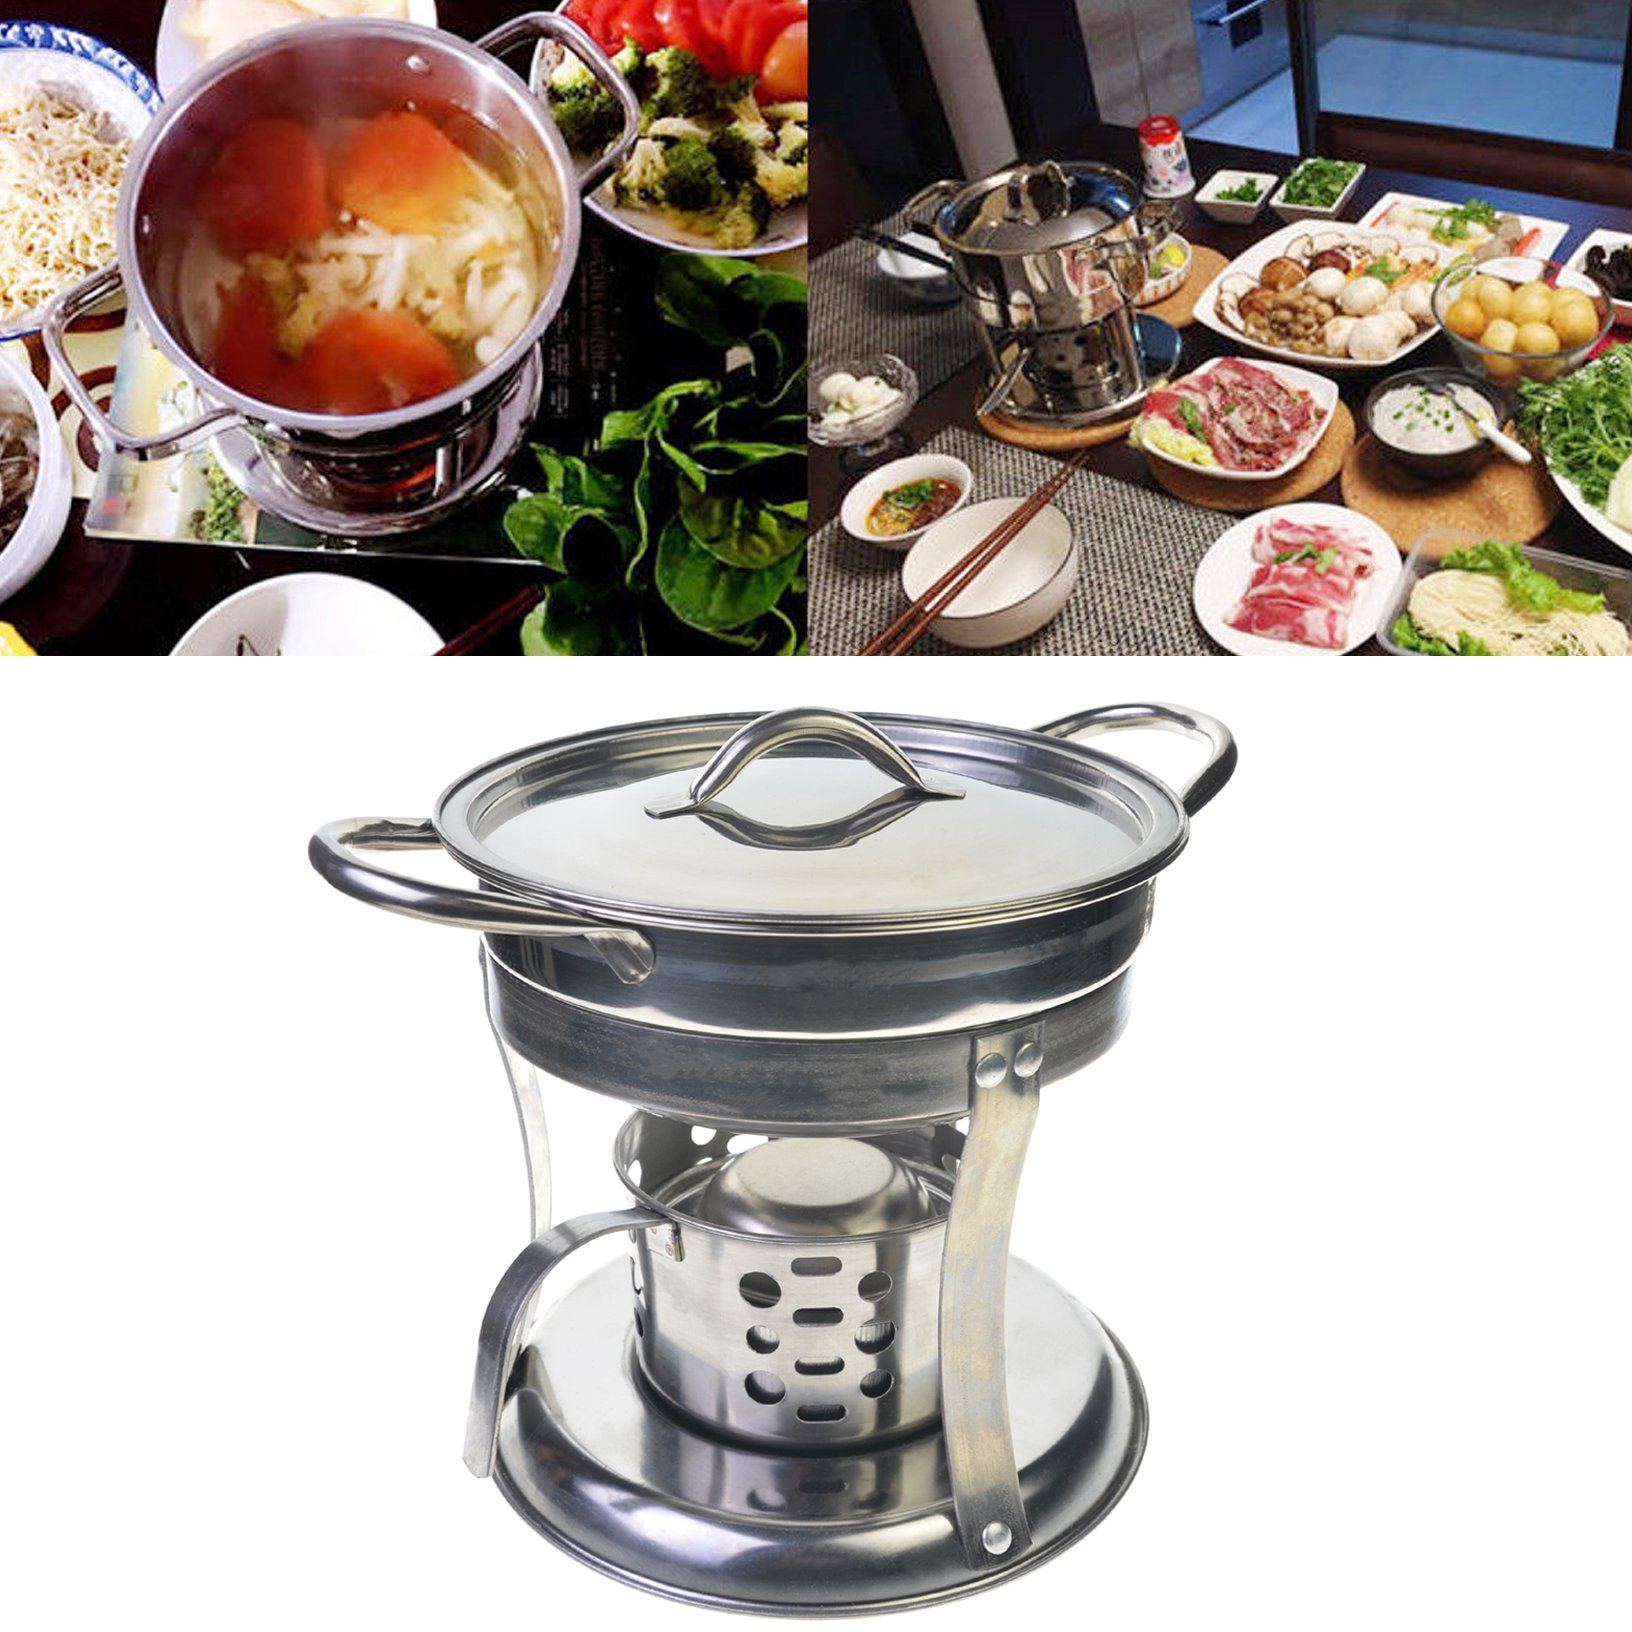 Toyofmine Stainless Steel Thick Cook Cooking Cookware Hot Pot + Lid